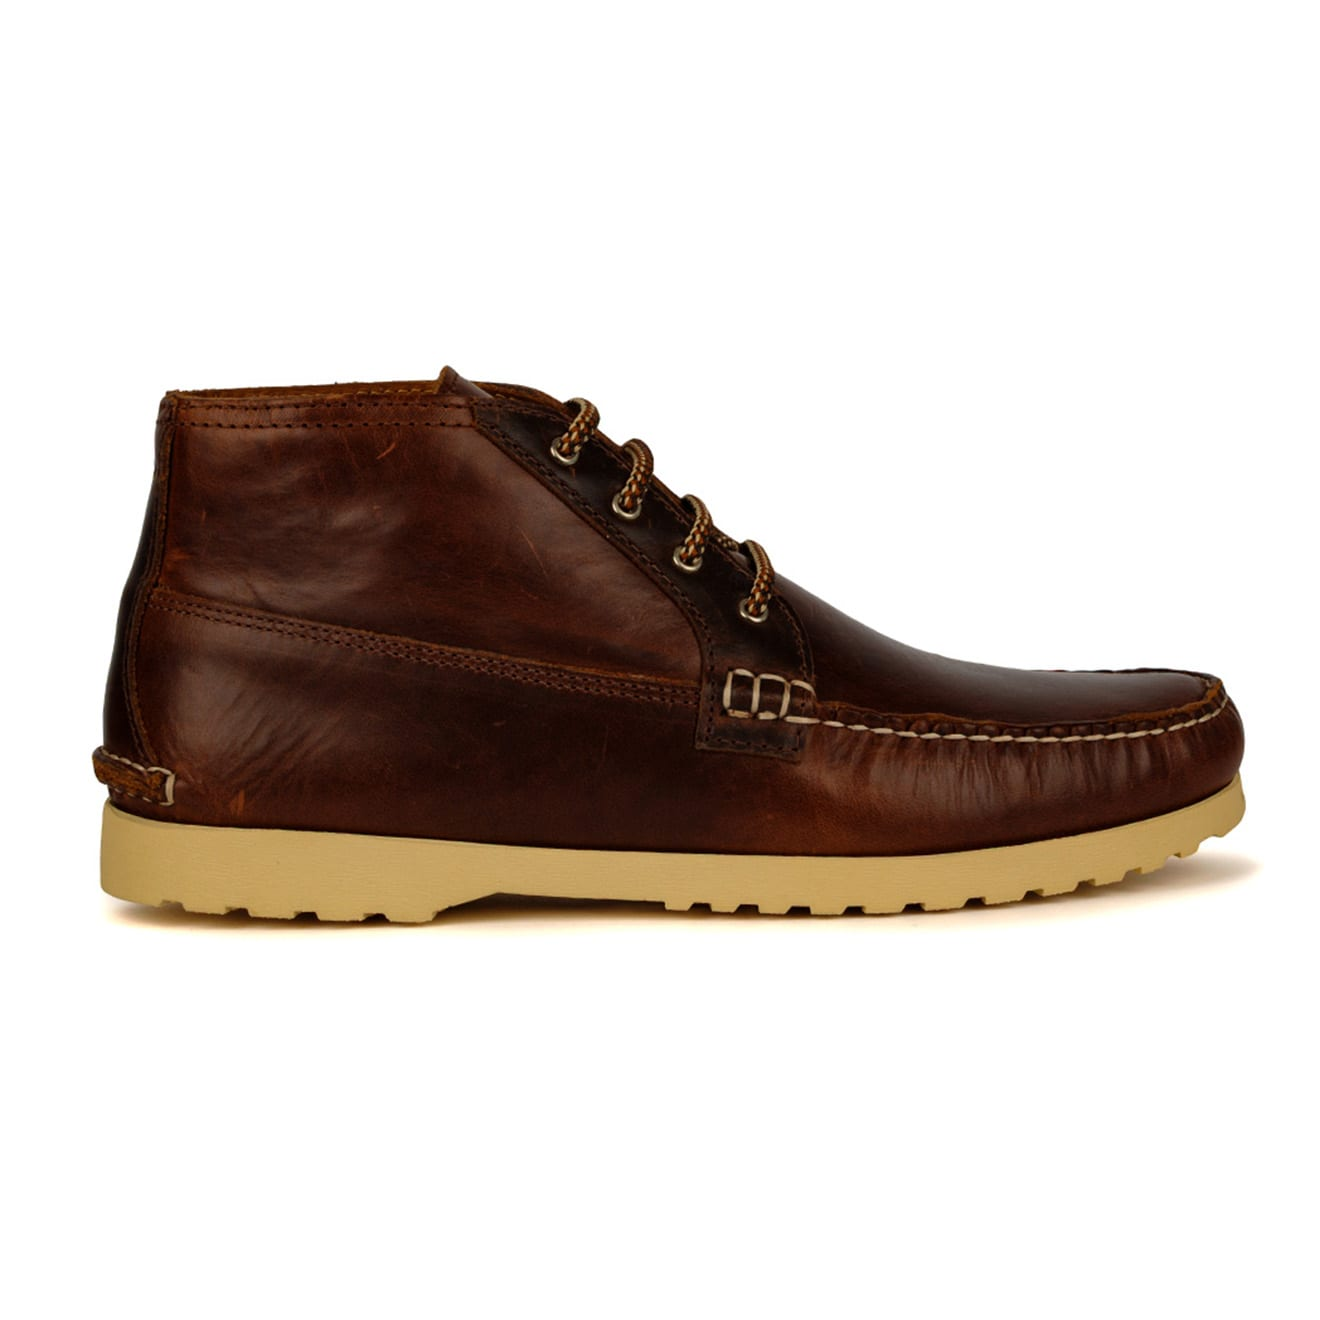 Quoddy Telos Chukka Boot Chromexcel Brown